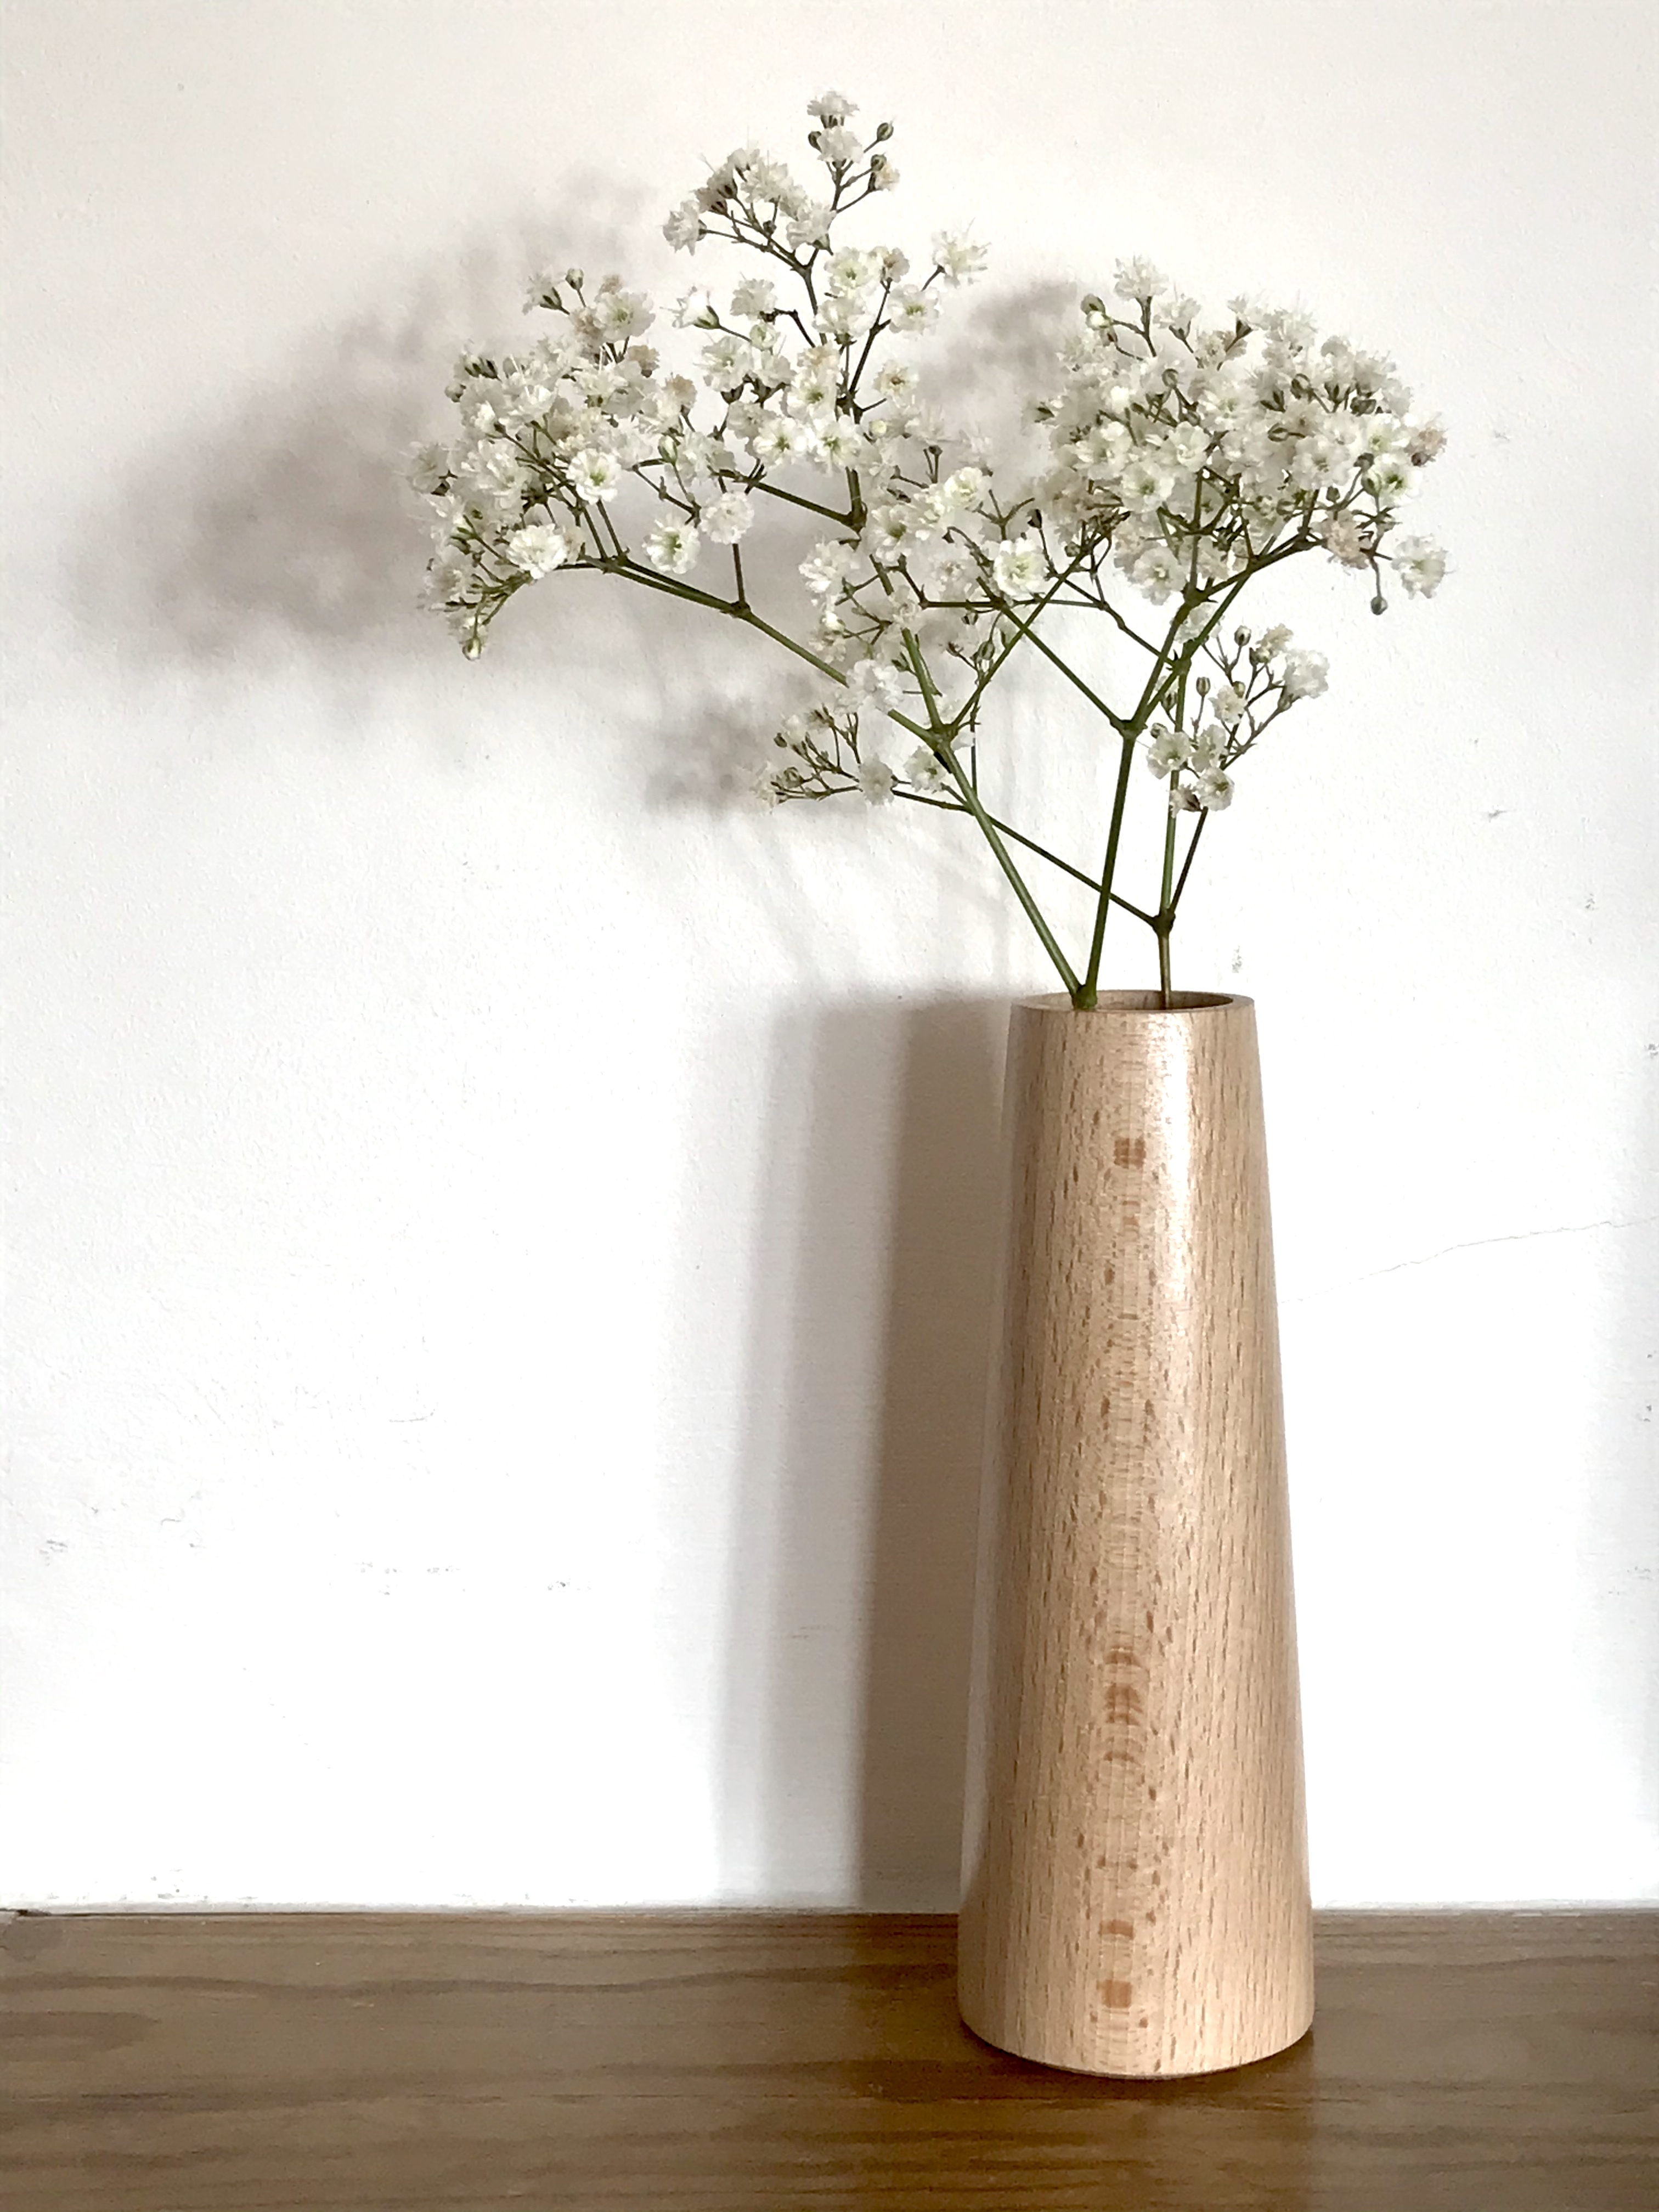 A small hand carved vase from a beech wood for flowers